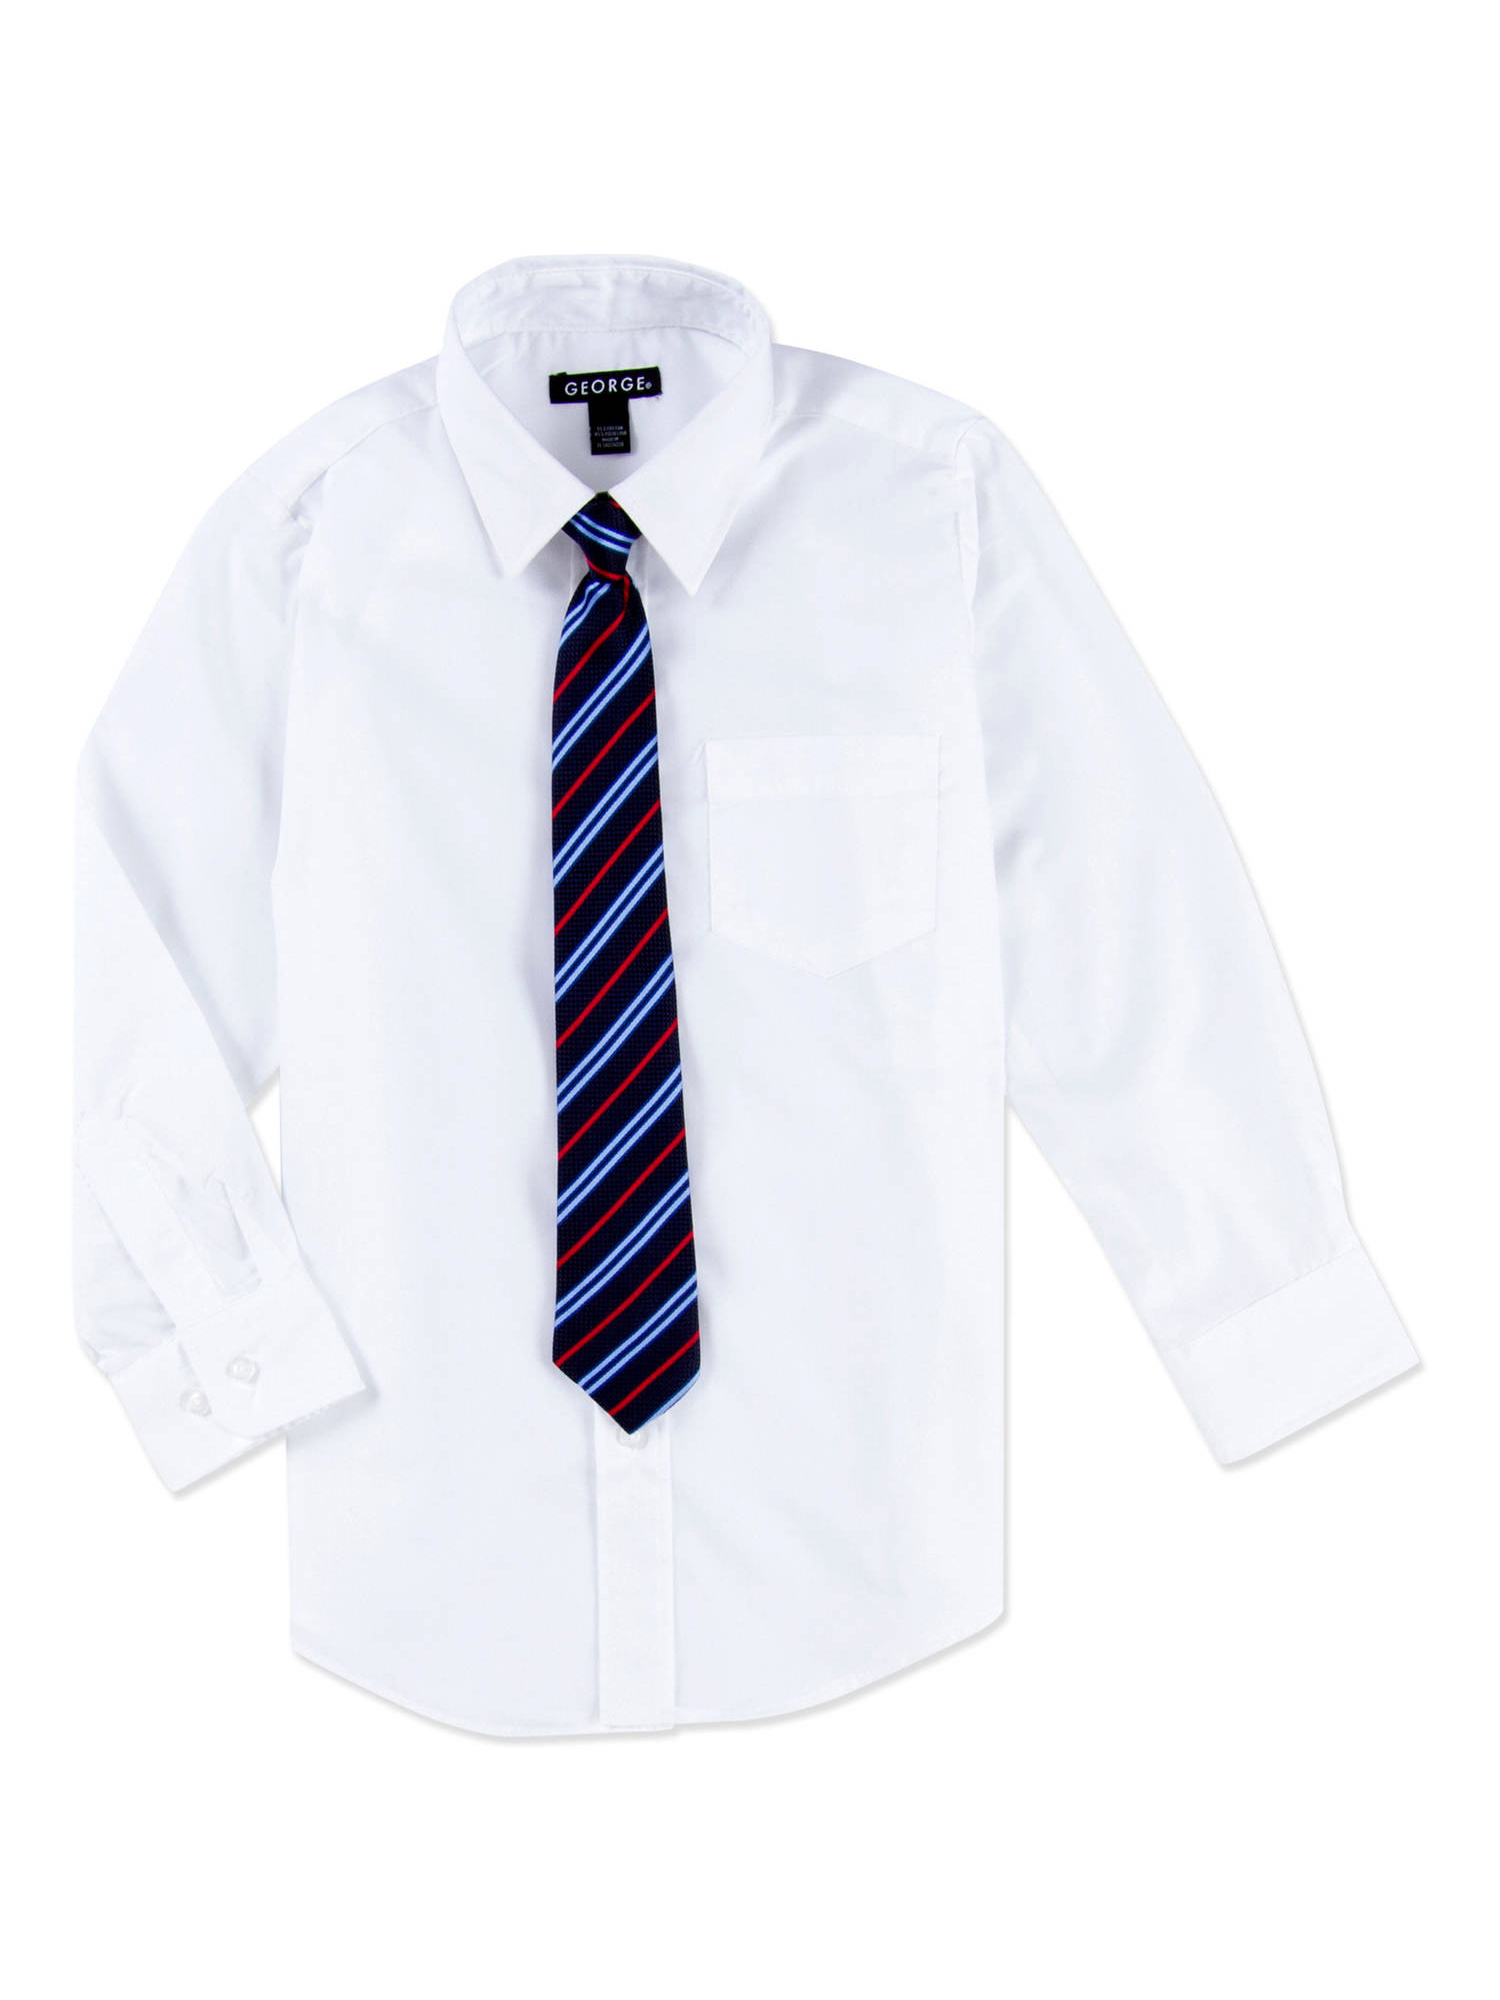 Boys Packaged Dress Shirt-Tie